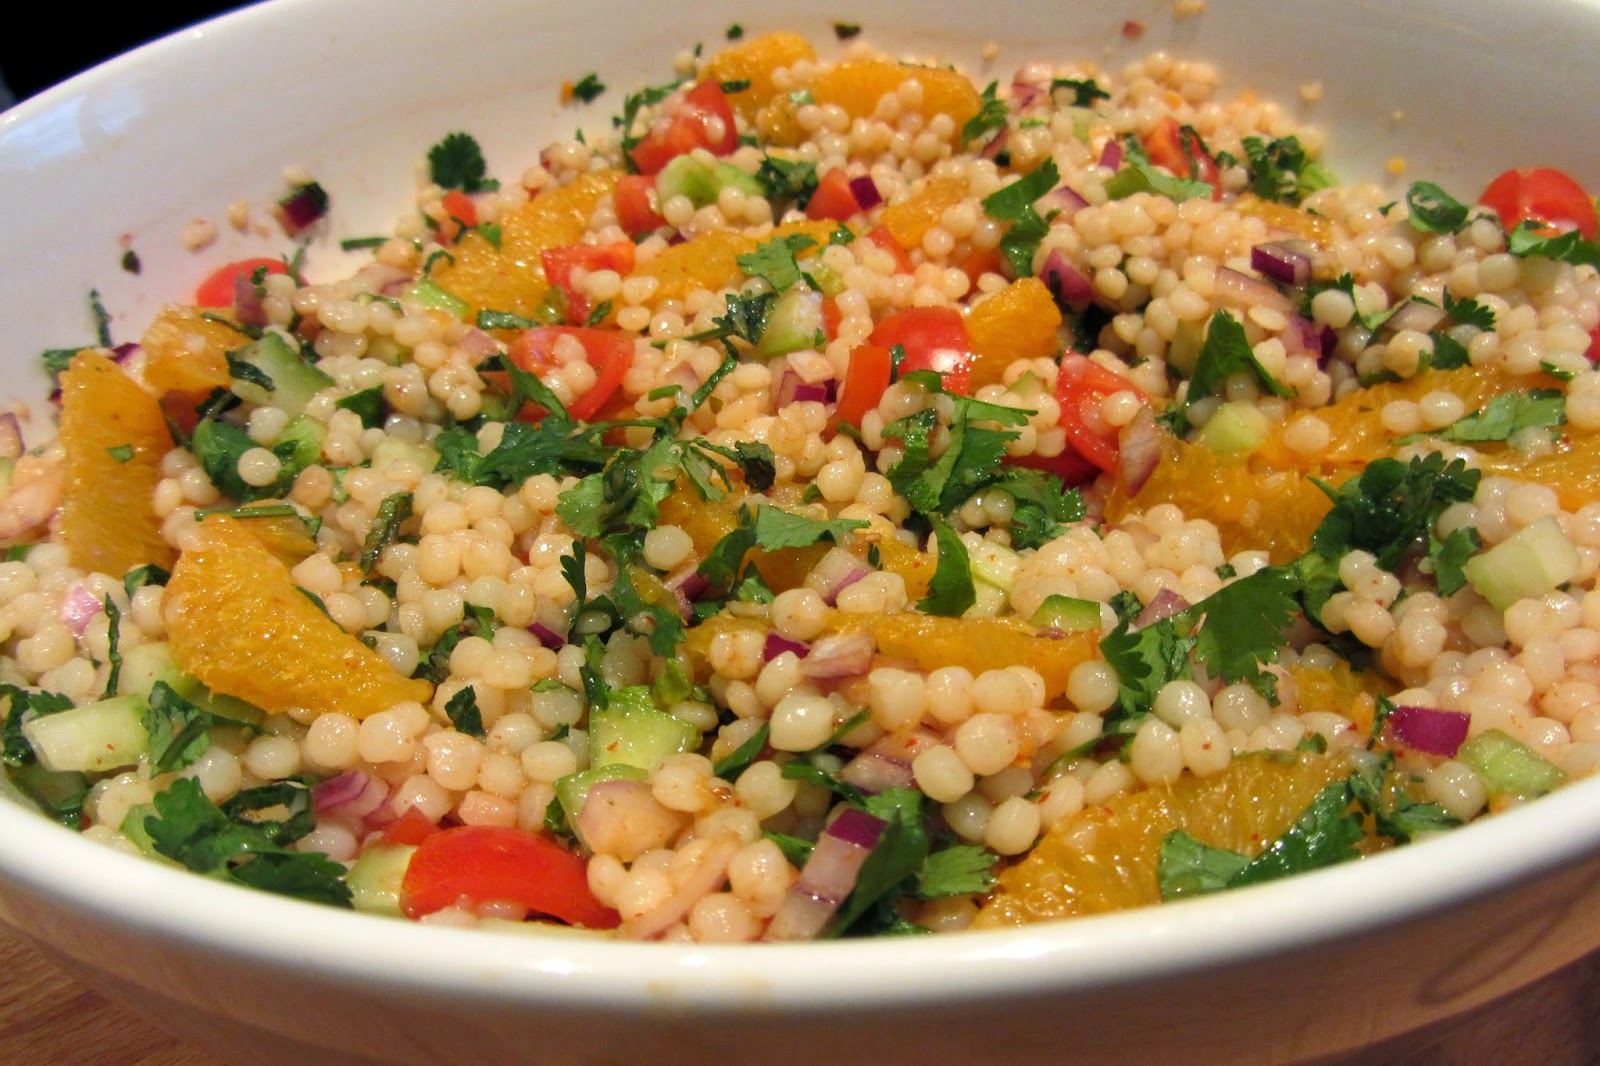 slimming world delights orange harissa and giant cous